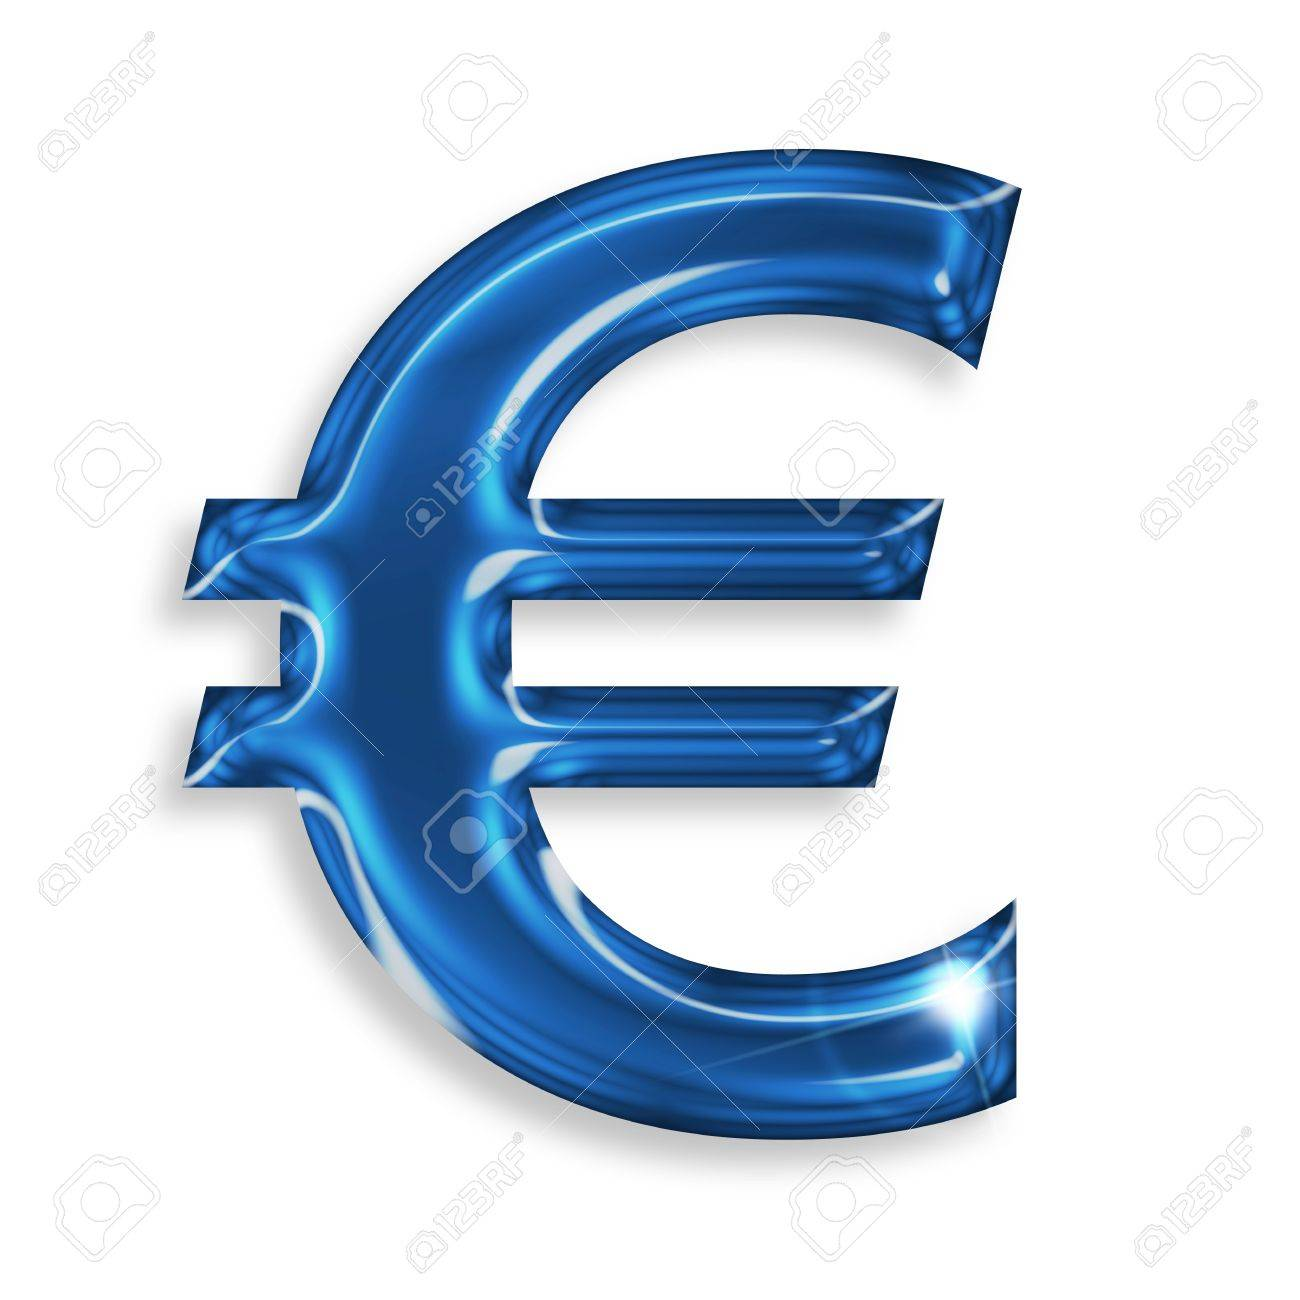 Euro symbol font image collections symbol and sign ideas euro symbol isolated on white background stock photo picture and euro symbol isolated on white background buycottarizona